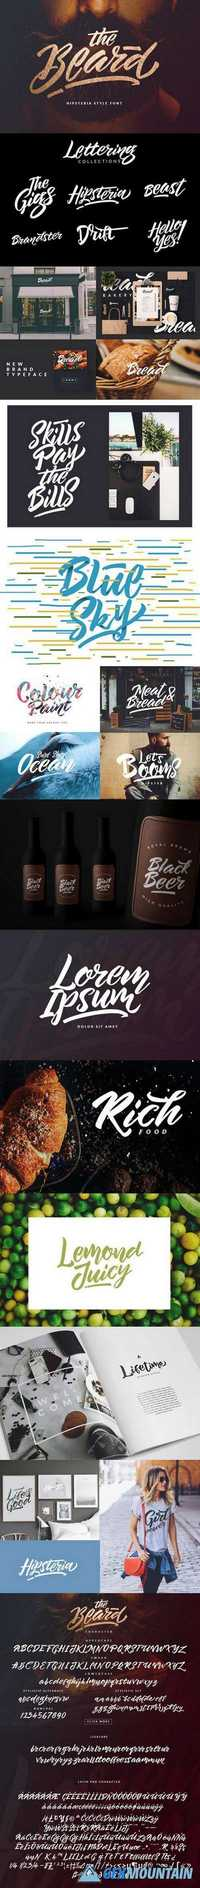 The Beard - Branded Typeface + Extras